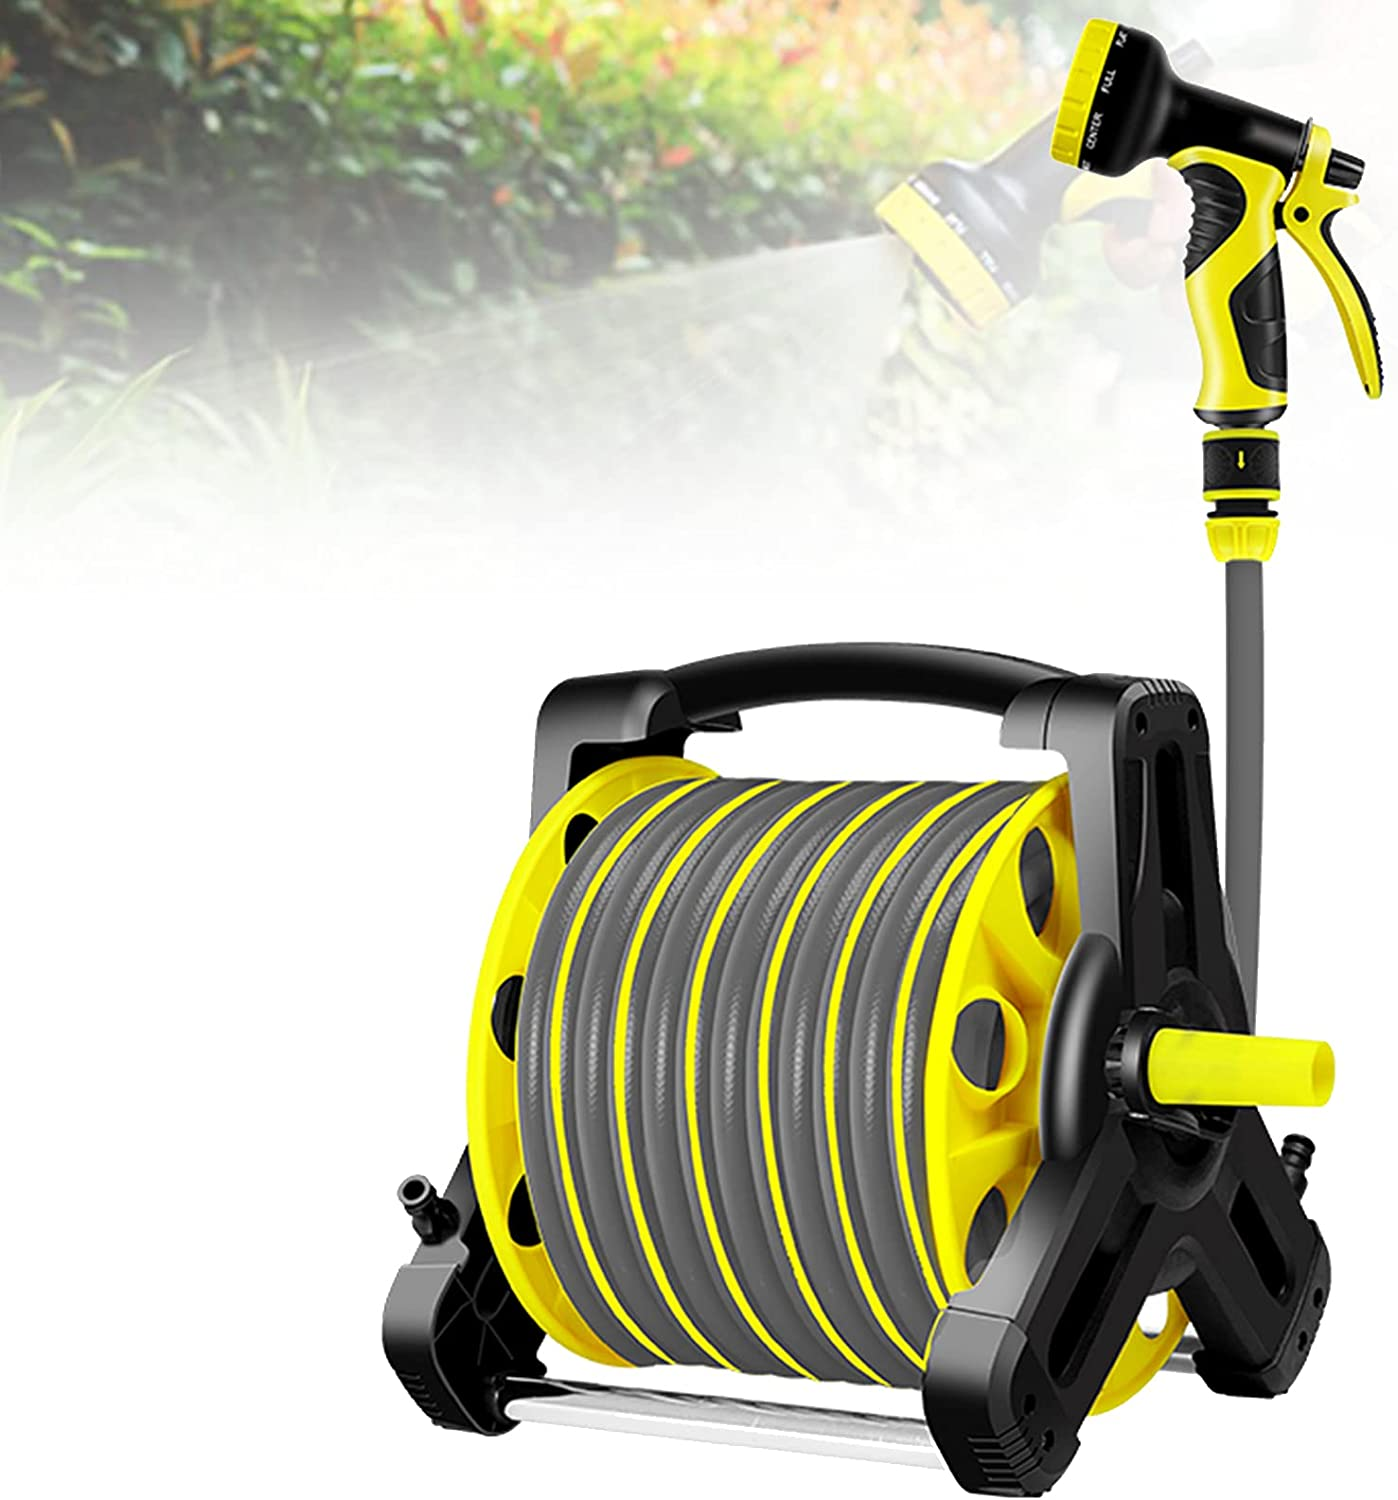 Award-winning store EnweMahi Wall-Mounted Reel Steady Hose Tripod Material Sales of SALE items from new works Pp